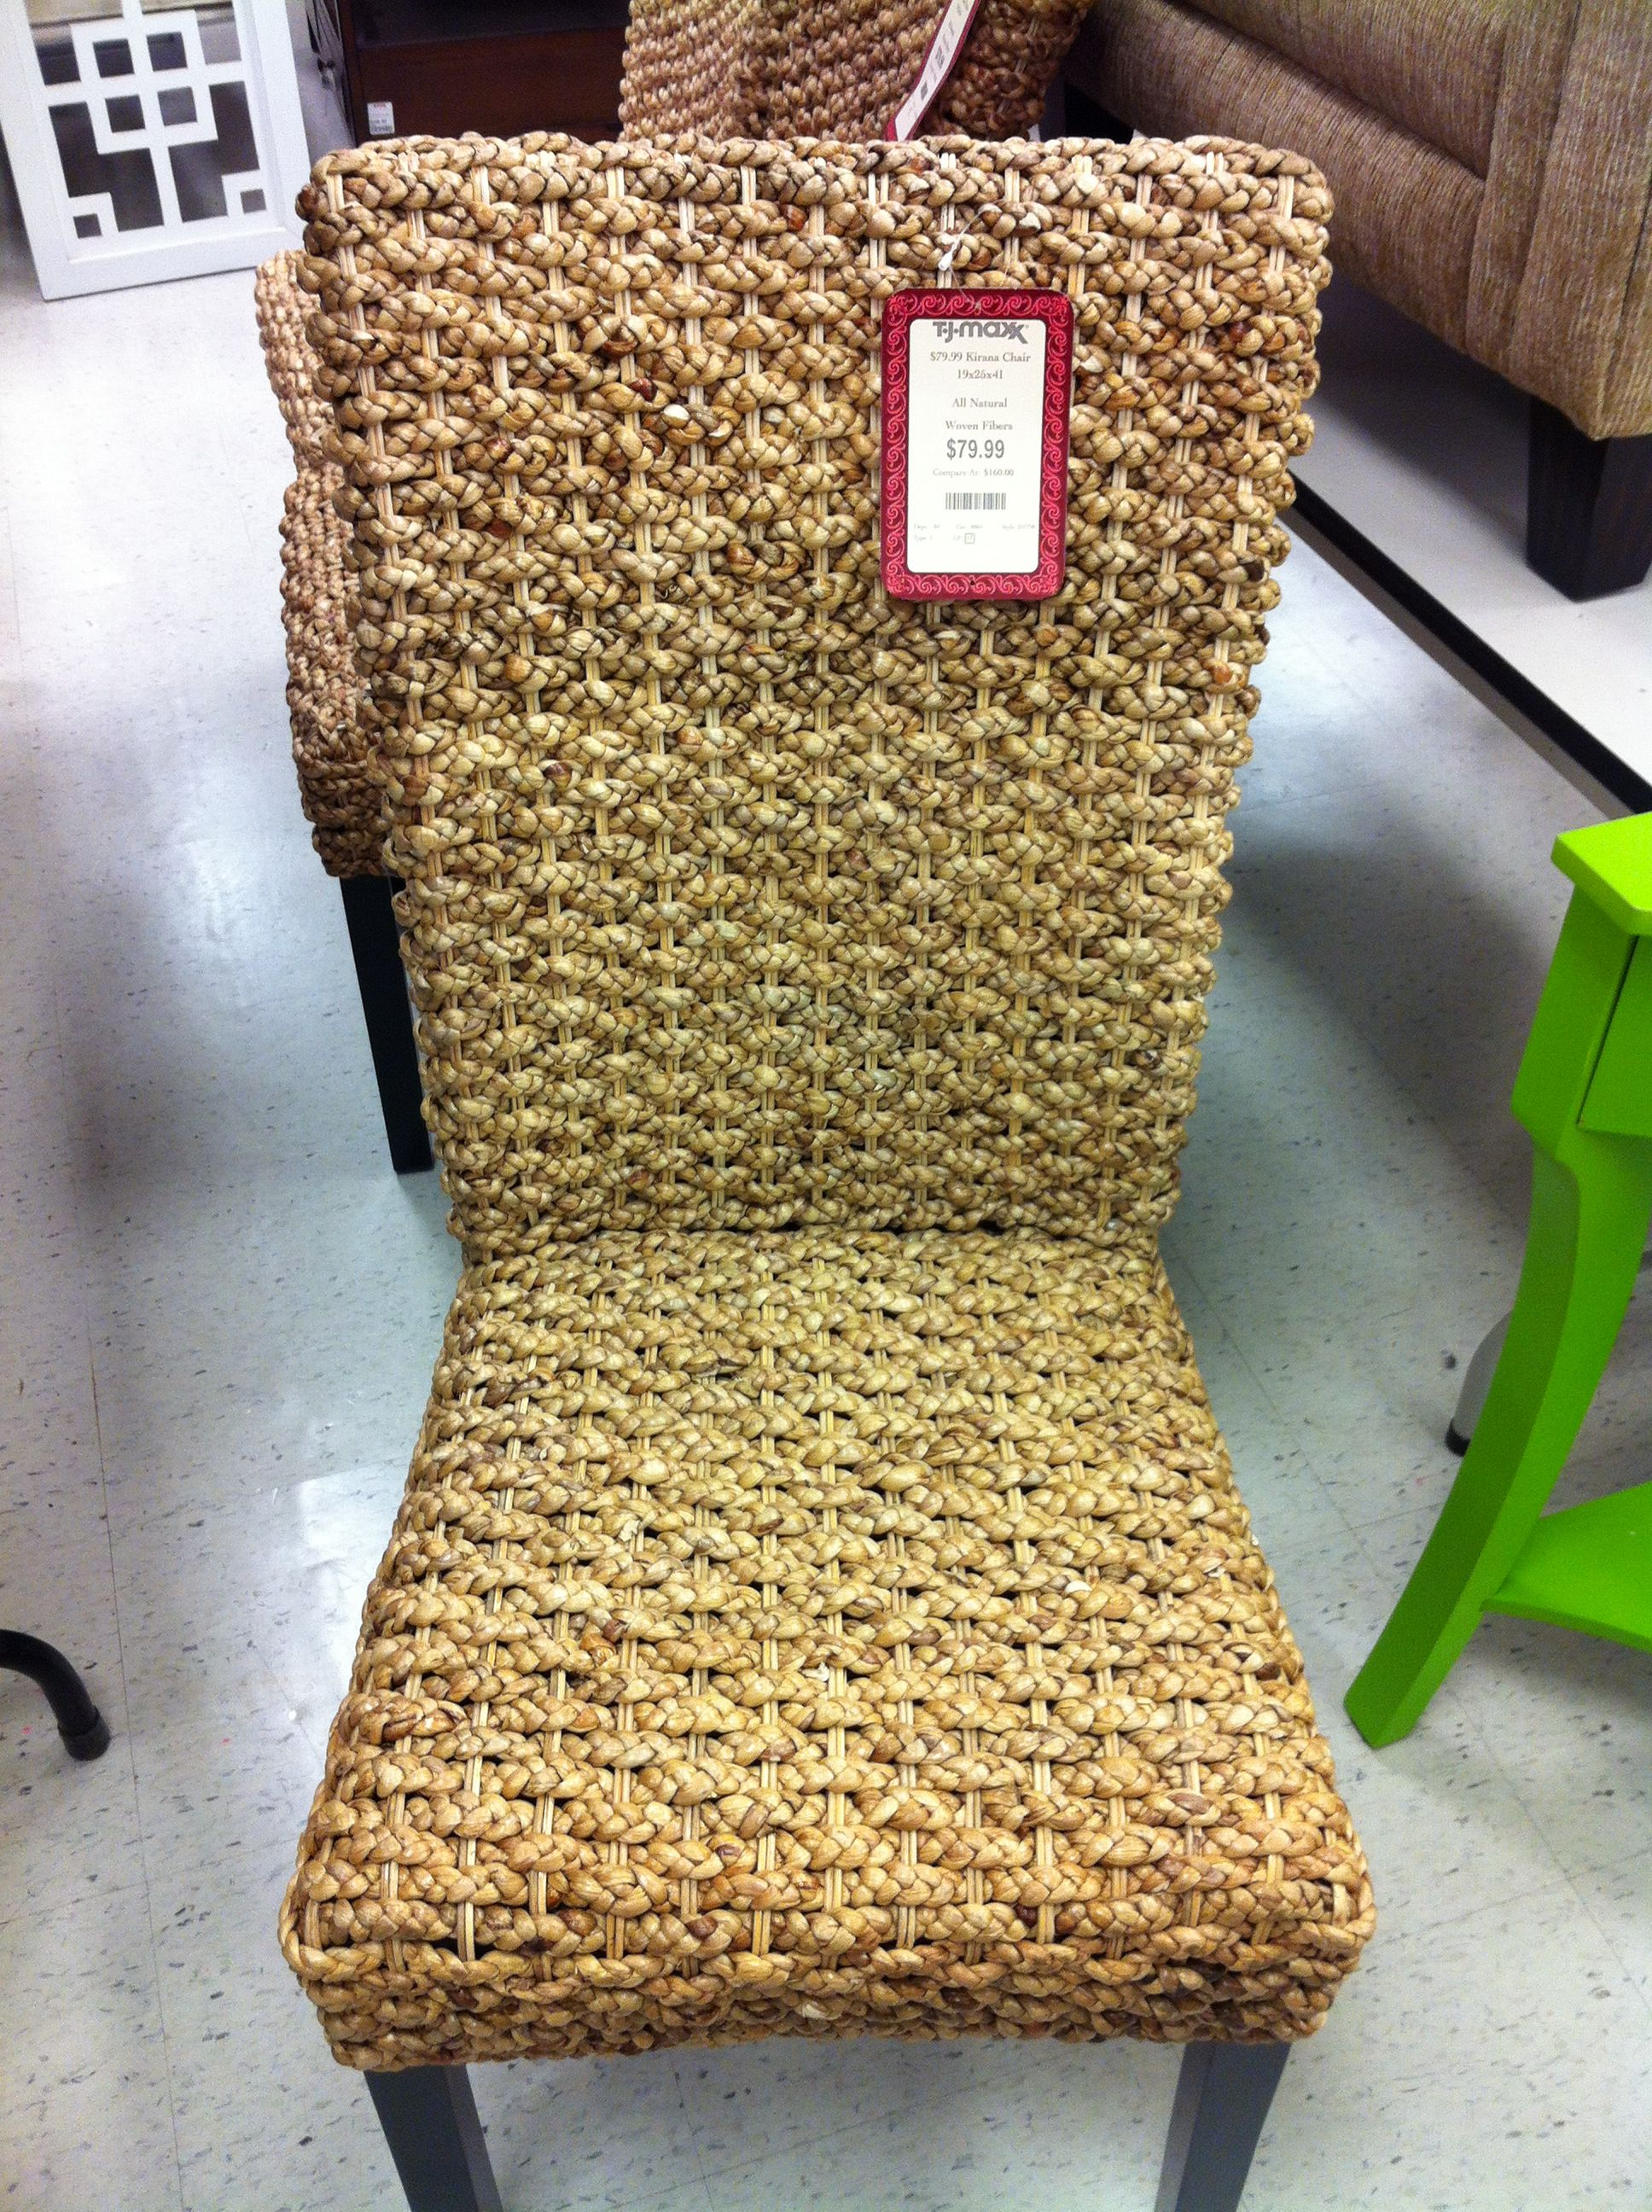 Kirana chair, woven reed chair. Maybe for dining room? 79